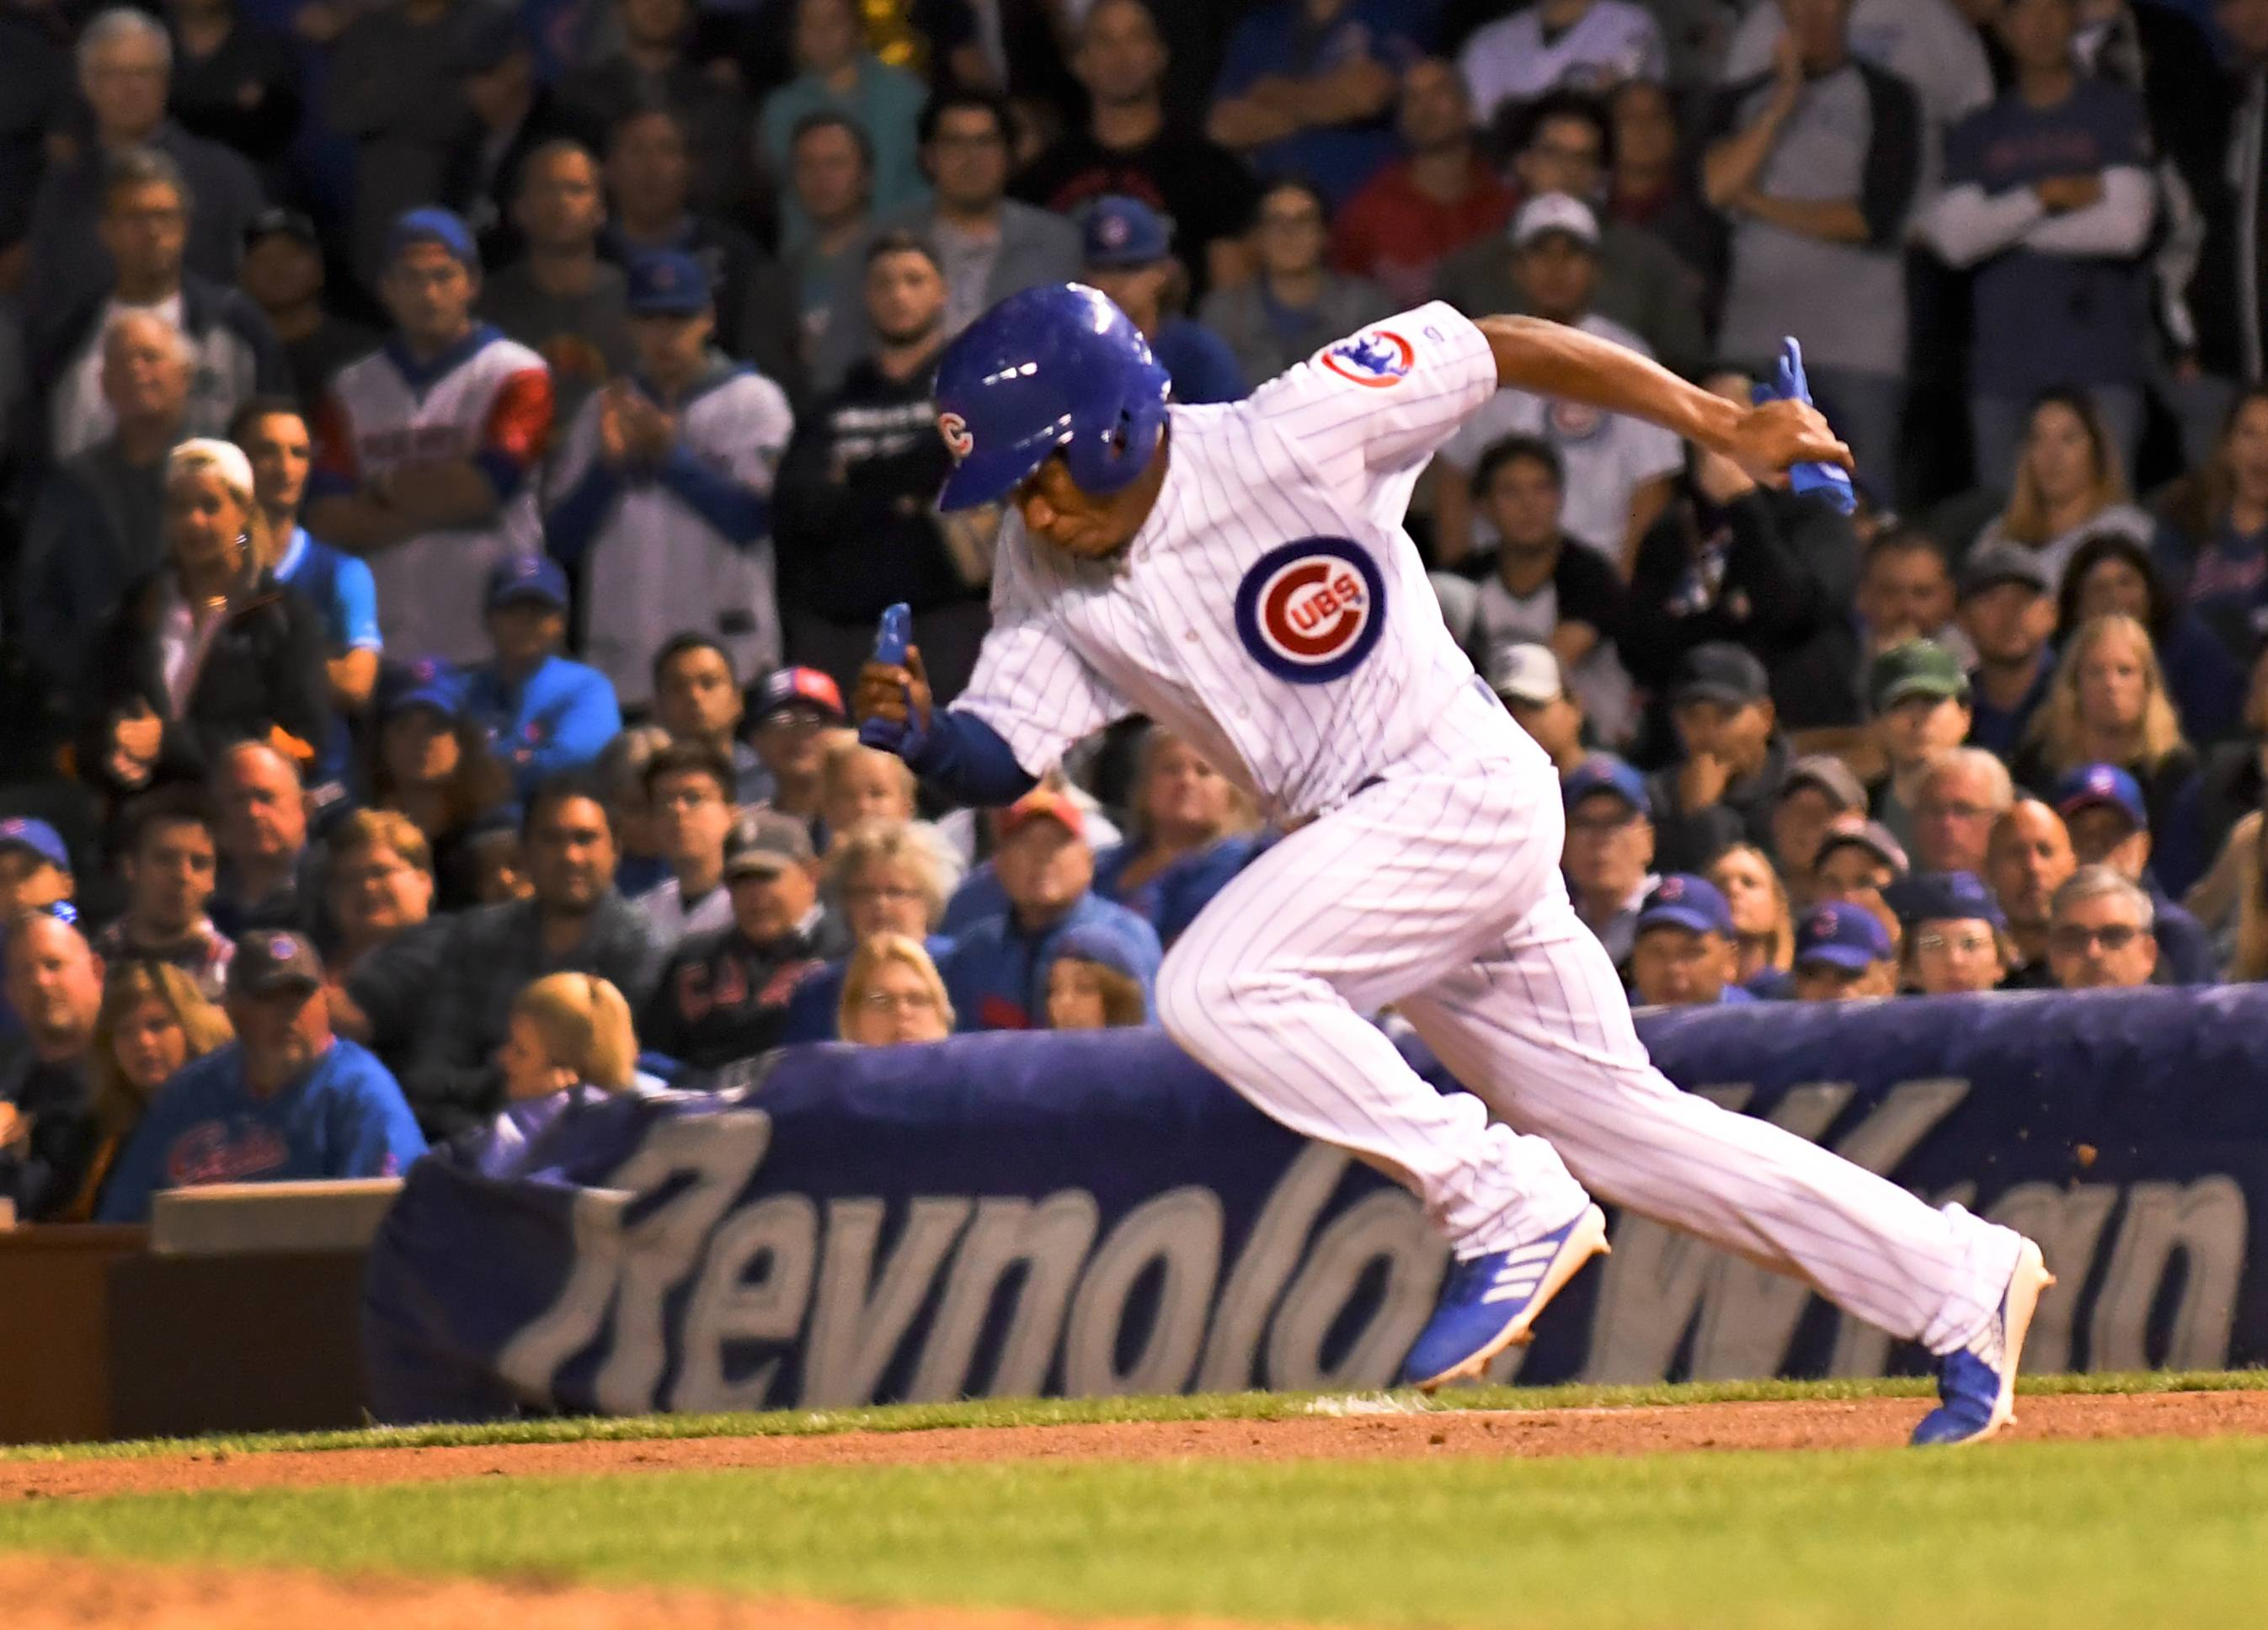 Terrance Gore has been a designated pinch runner during his tenure with the Cubs.